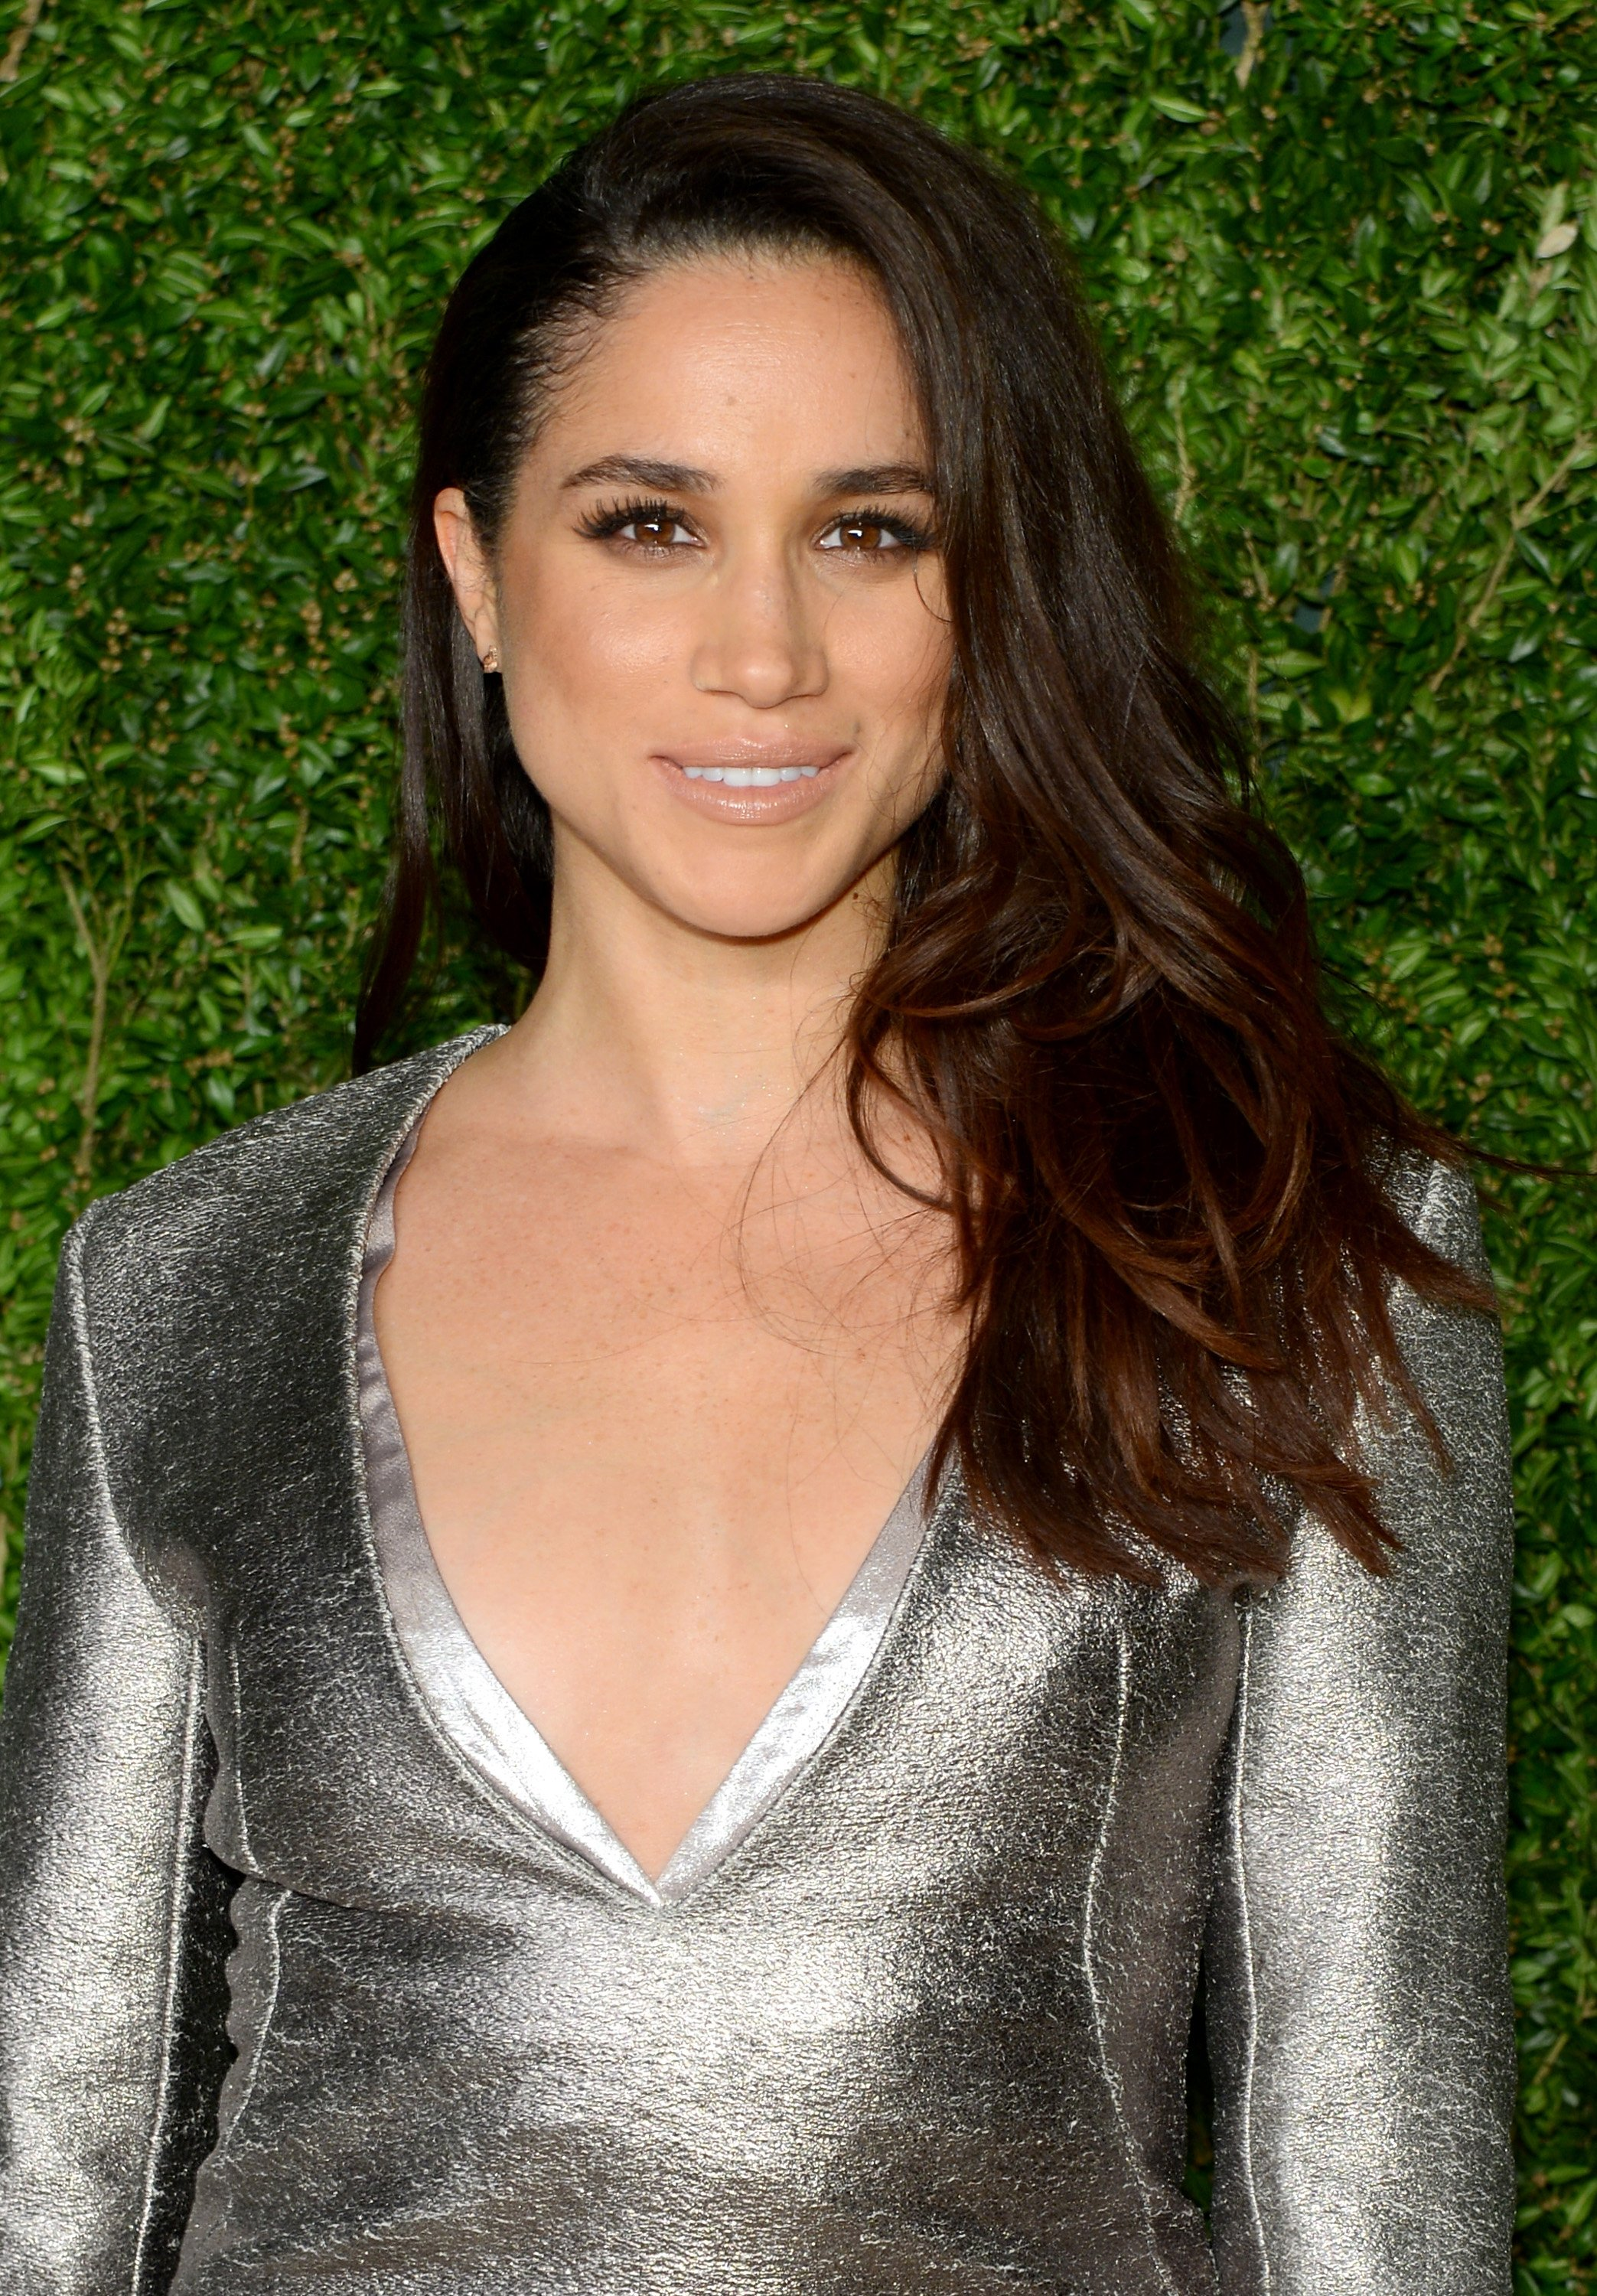 Meghan Markle attends the 12th annual CFDA/Vogue Fashion Fund Awards at Spring Studios on November 2, 2015 in New York City | Photo: Getty Images